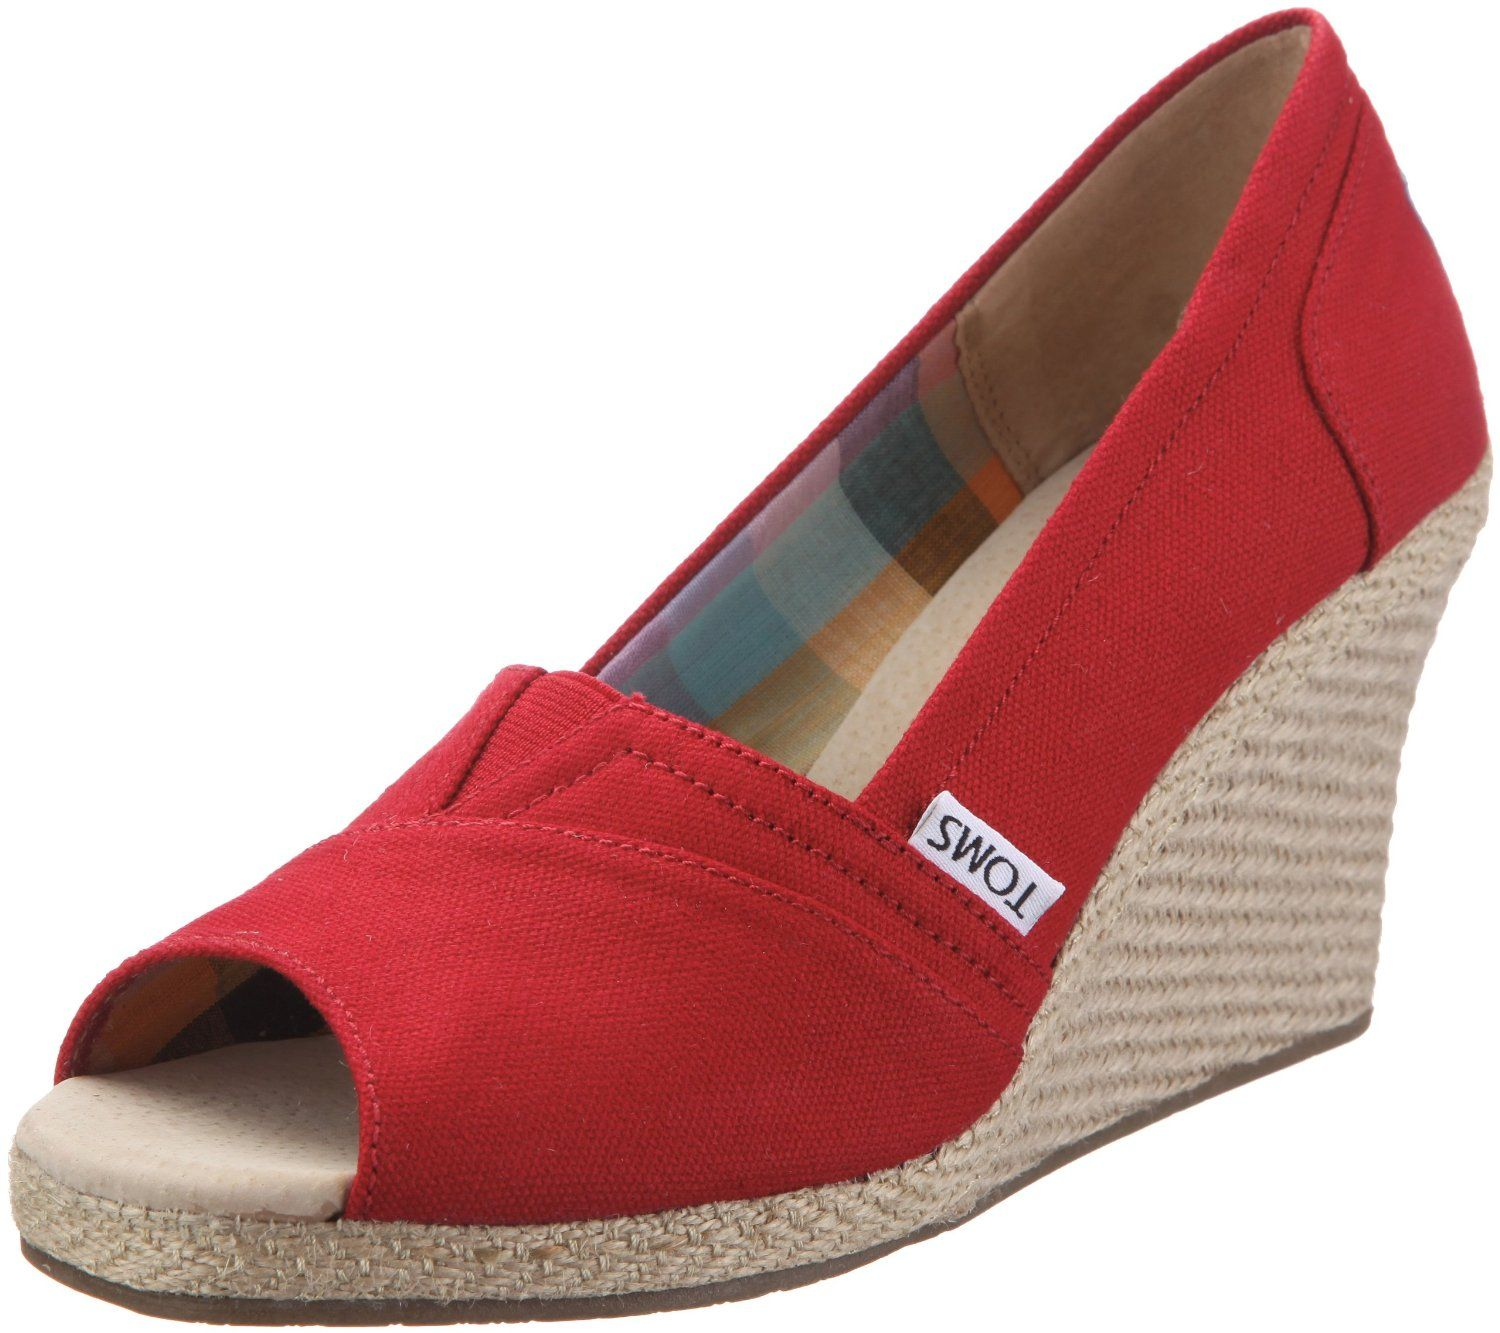 5e7cc0d20484c Amazon.com: Toms - Womens Canvas Rope Wedges In Red: Shoes | Things ...